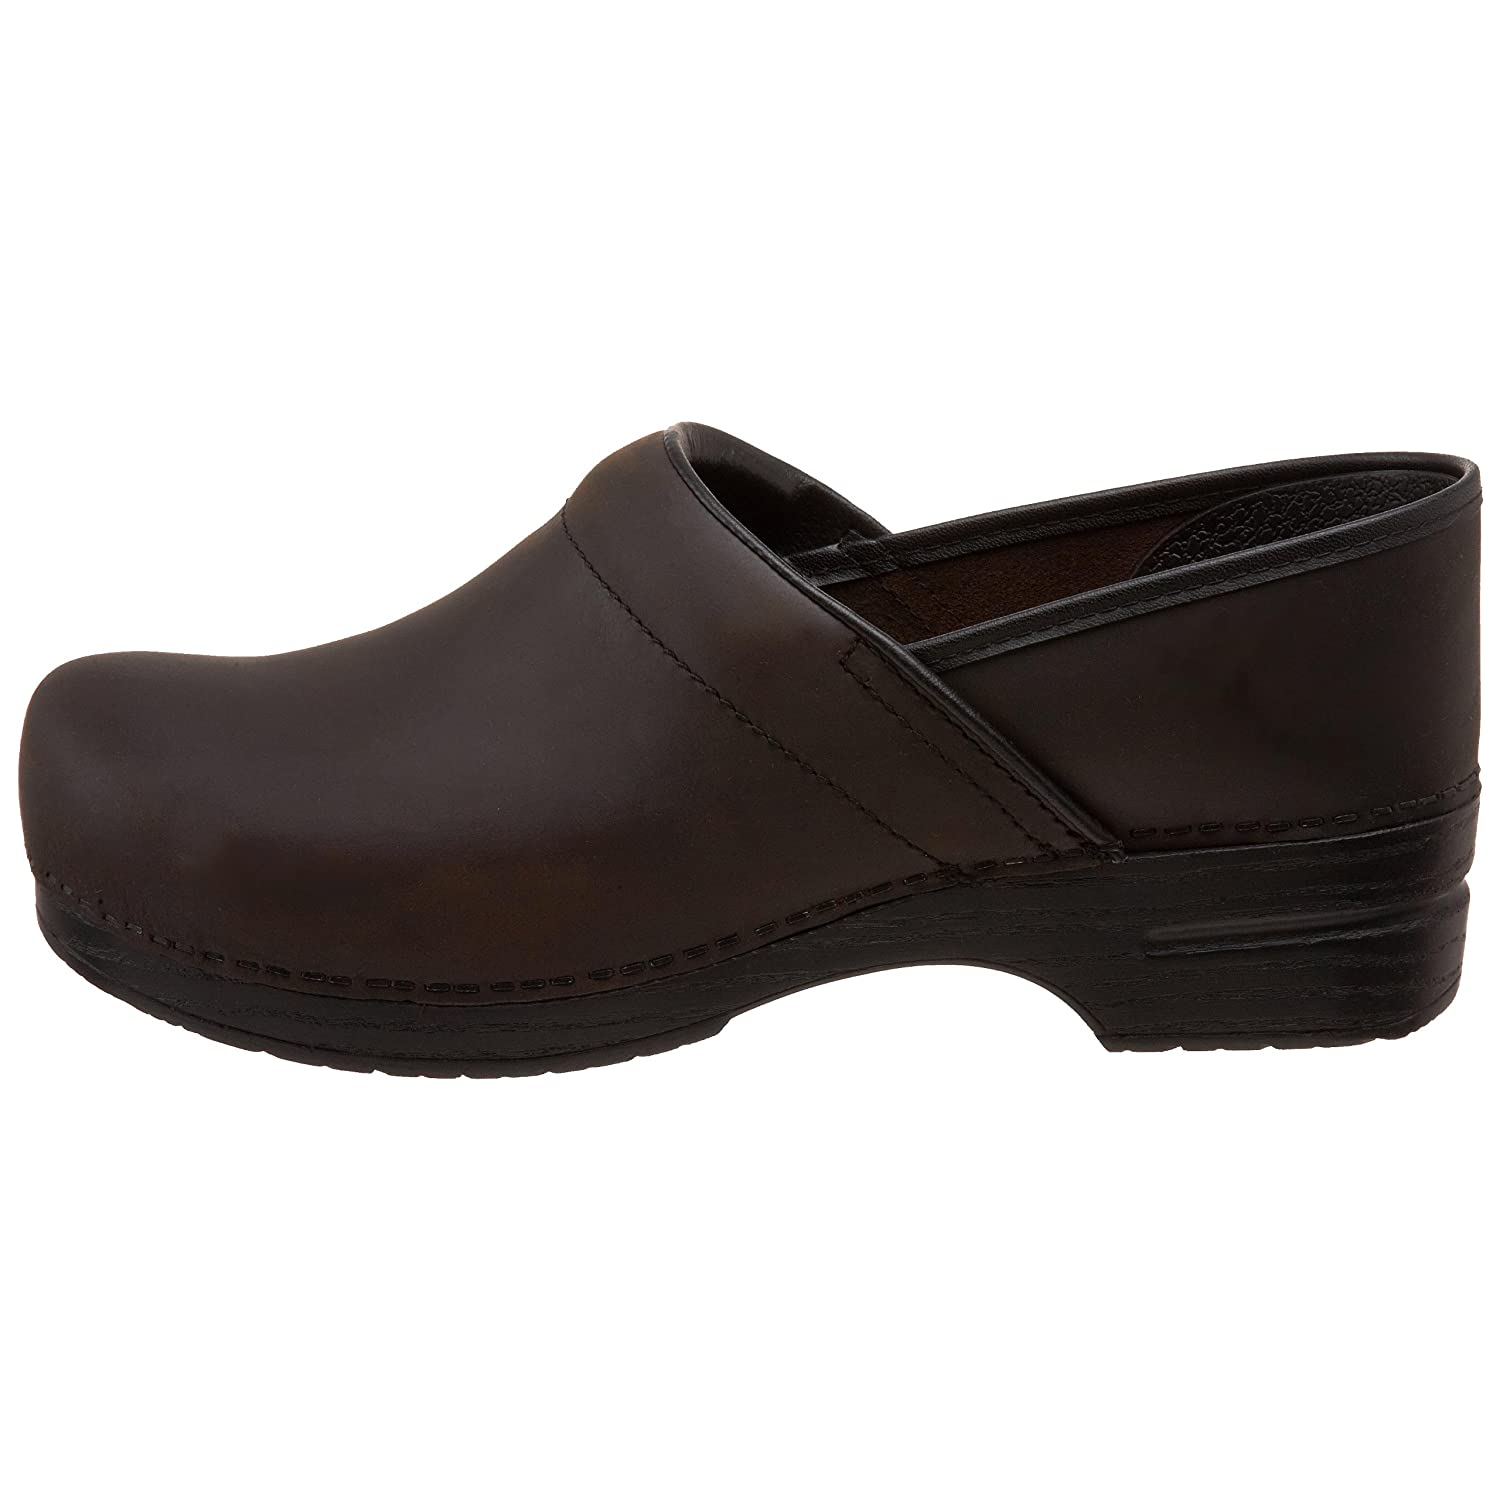 Dansko Men's Wide Professional Clog